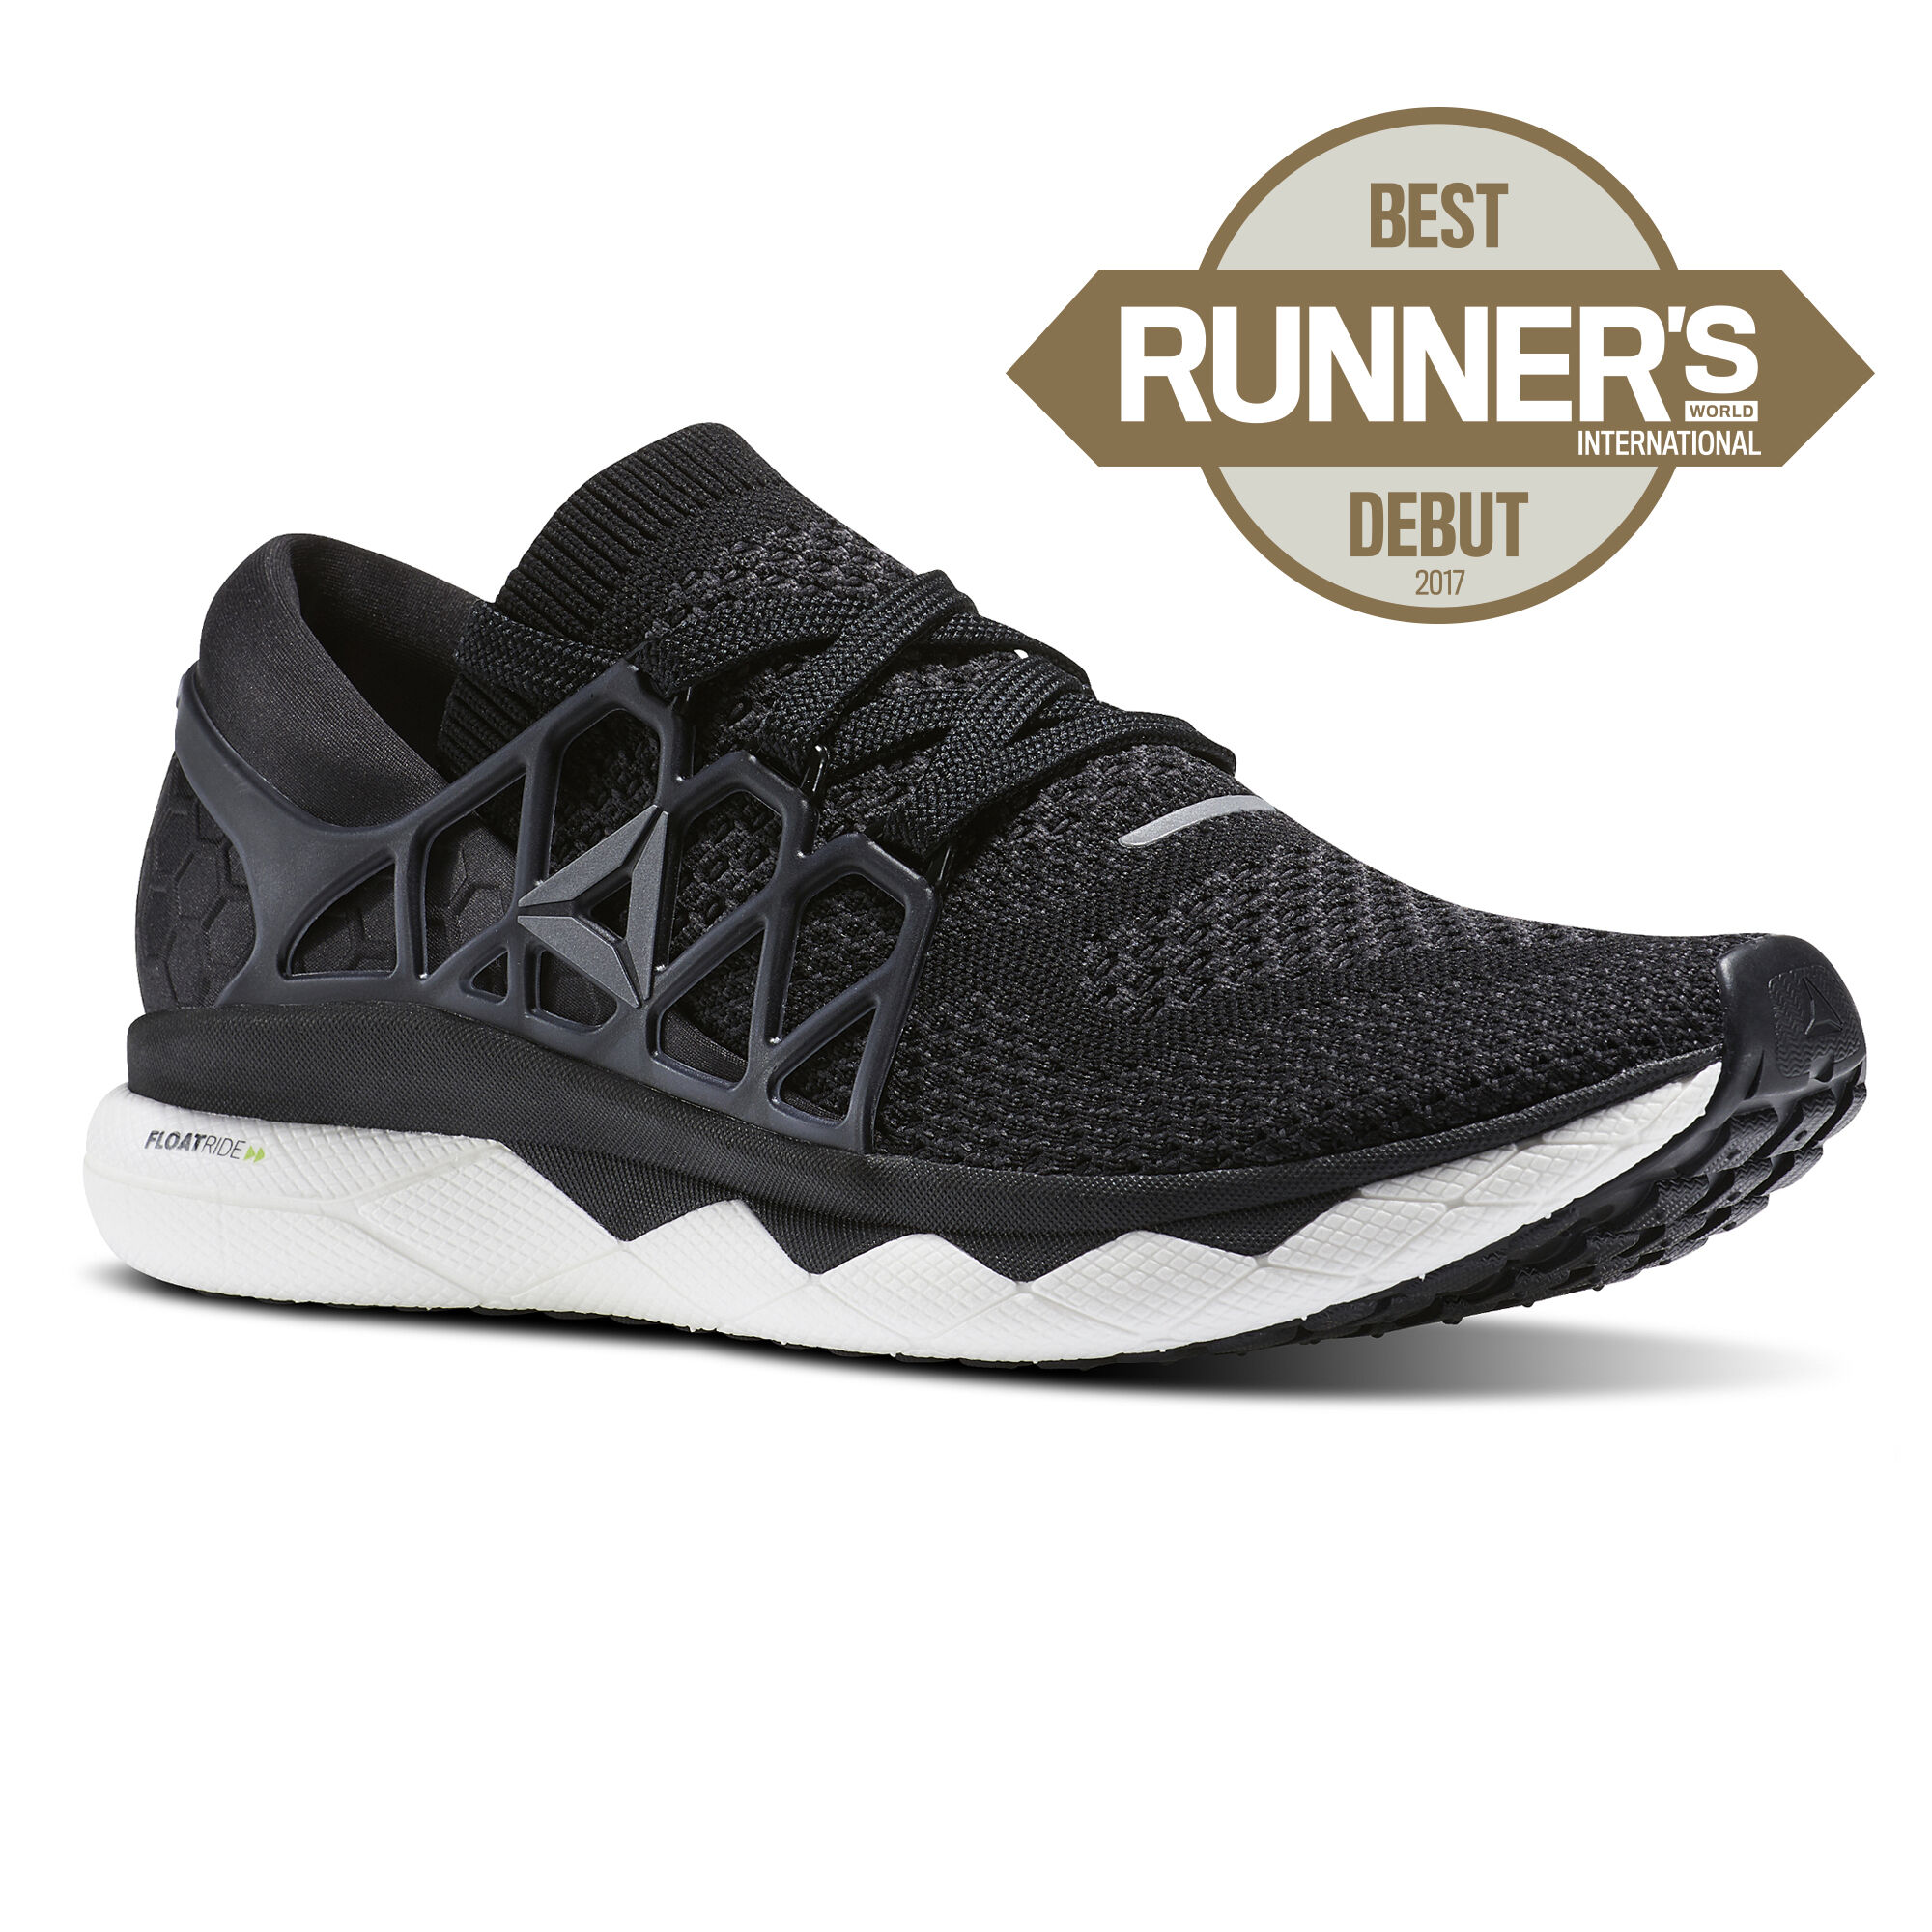 Reebok - Reebok Floatride Run Ultraknit Black/Gravel/White BS8152